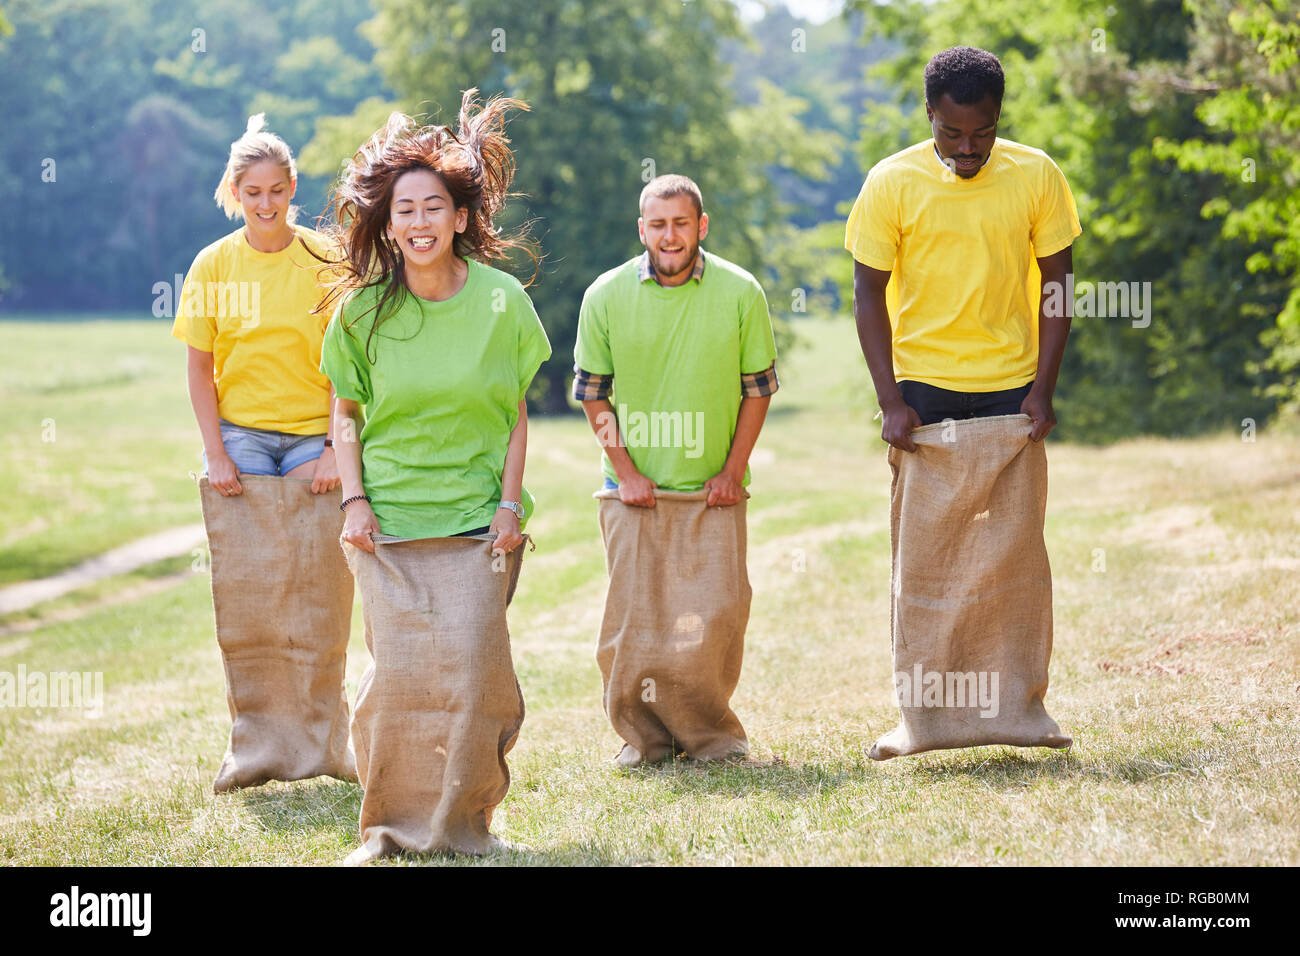 Teams play against each other Sack-hopping as a team building Event in the park - Stock Image